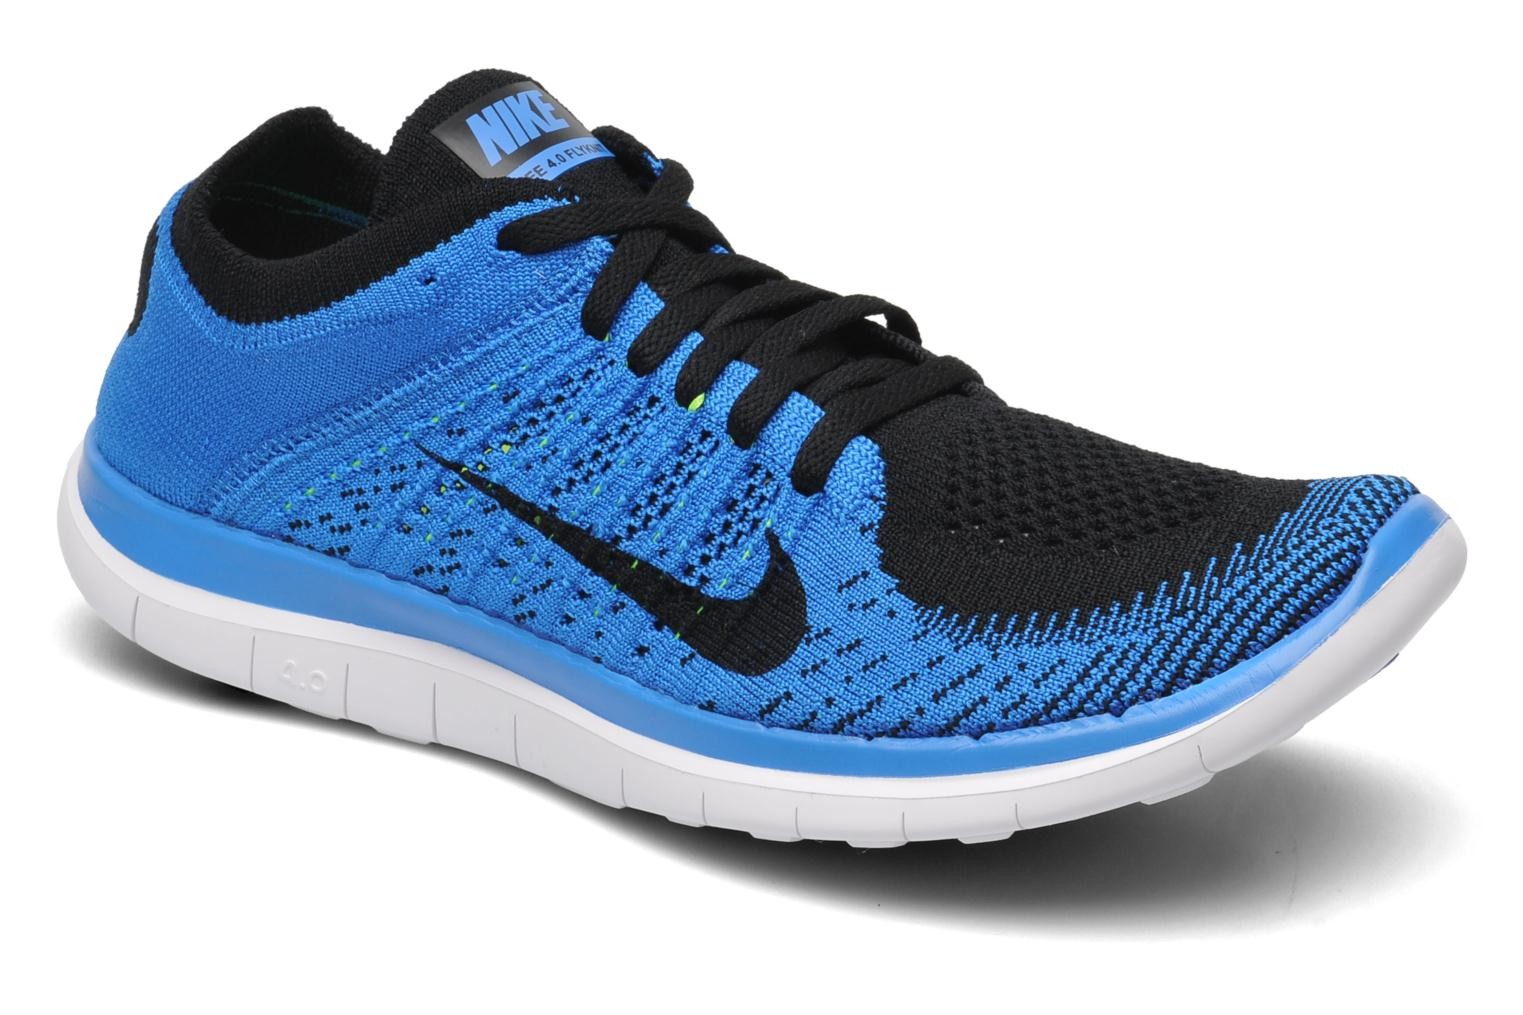 Men's Nike Free Flyknit 4.0 Black Photo Blue White Sneakers : C2f3434